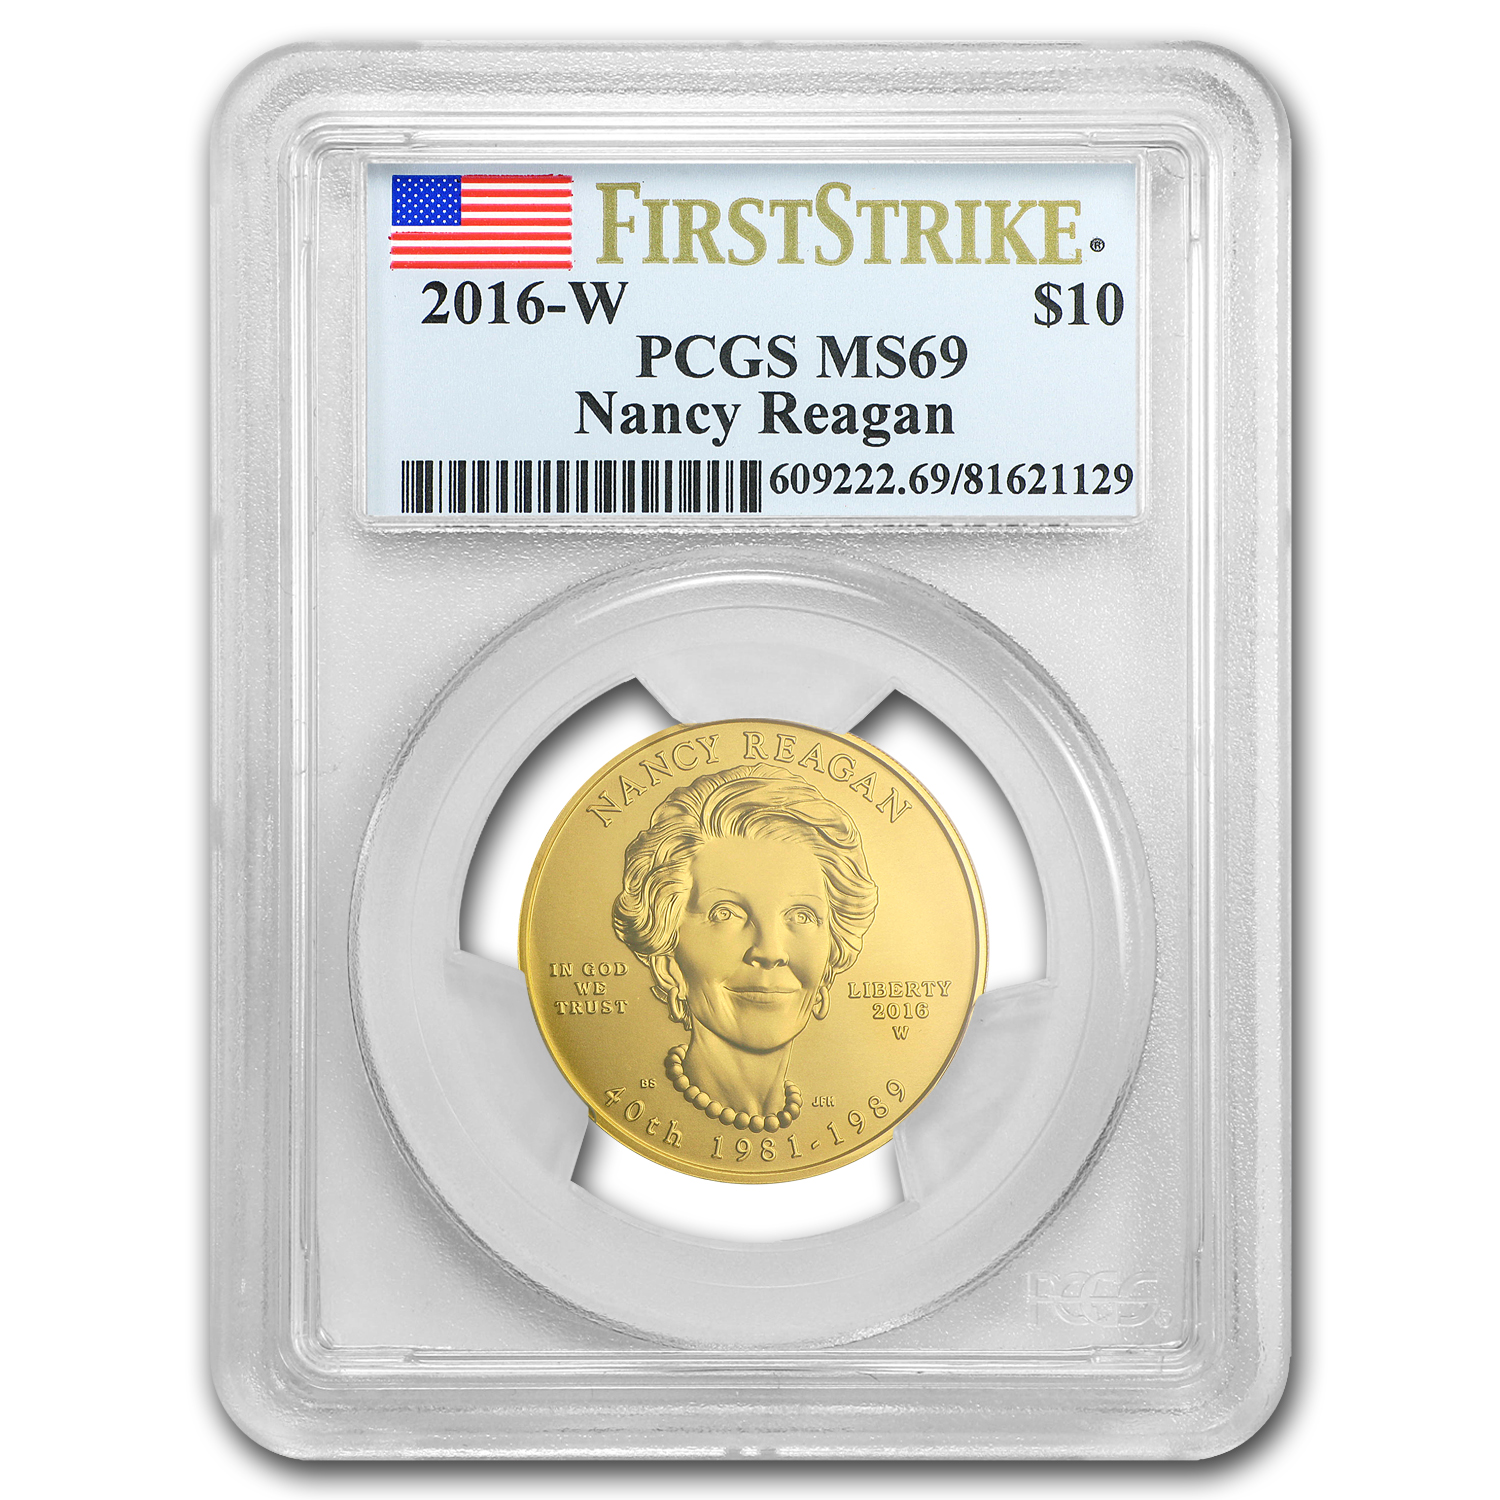 2016-W 1/2 oz Gold Nancy Reagan MS-69 PCGS (FS)